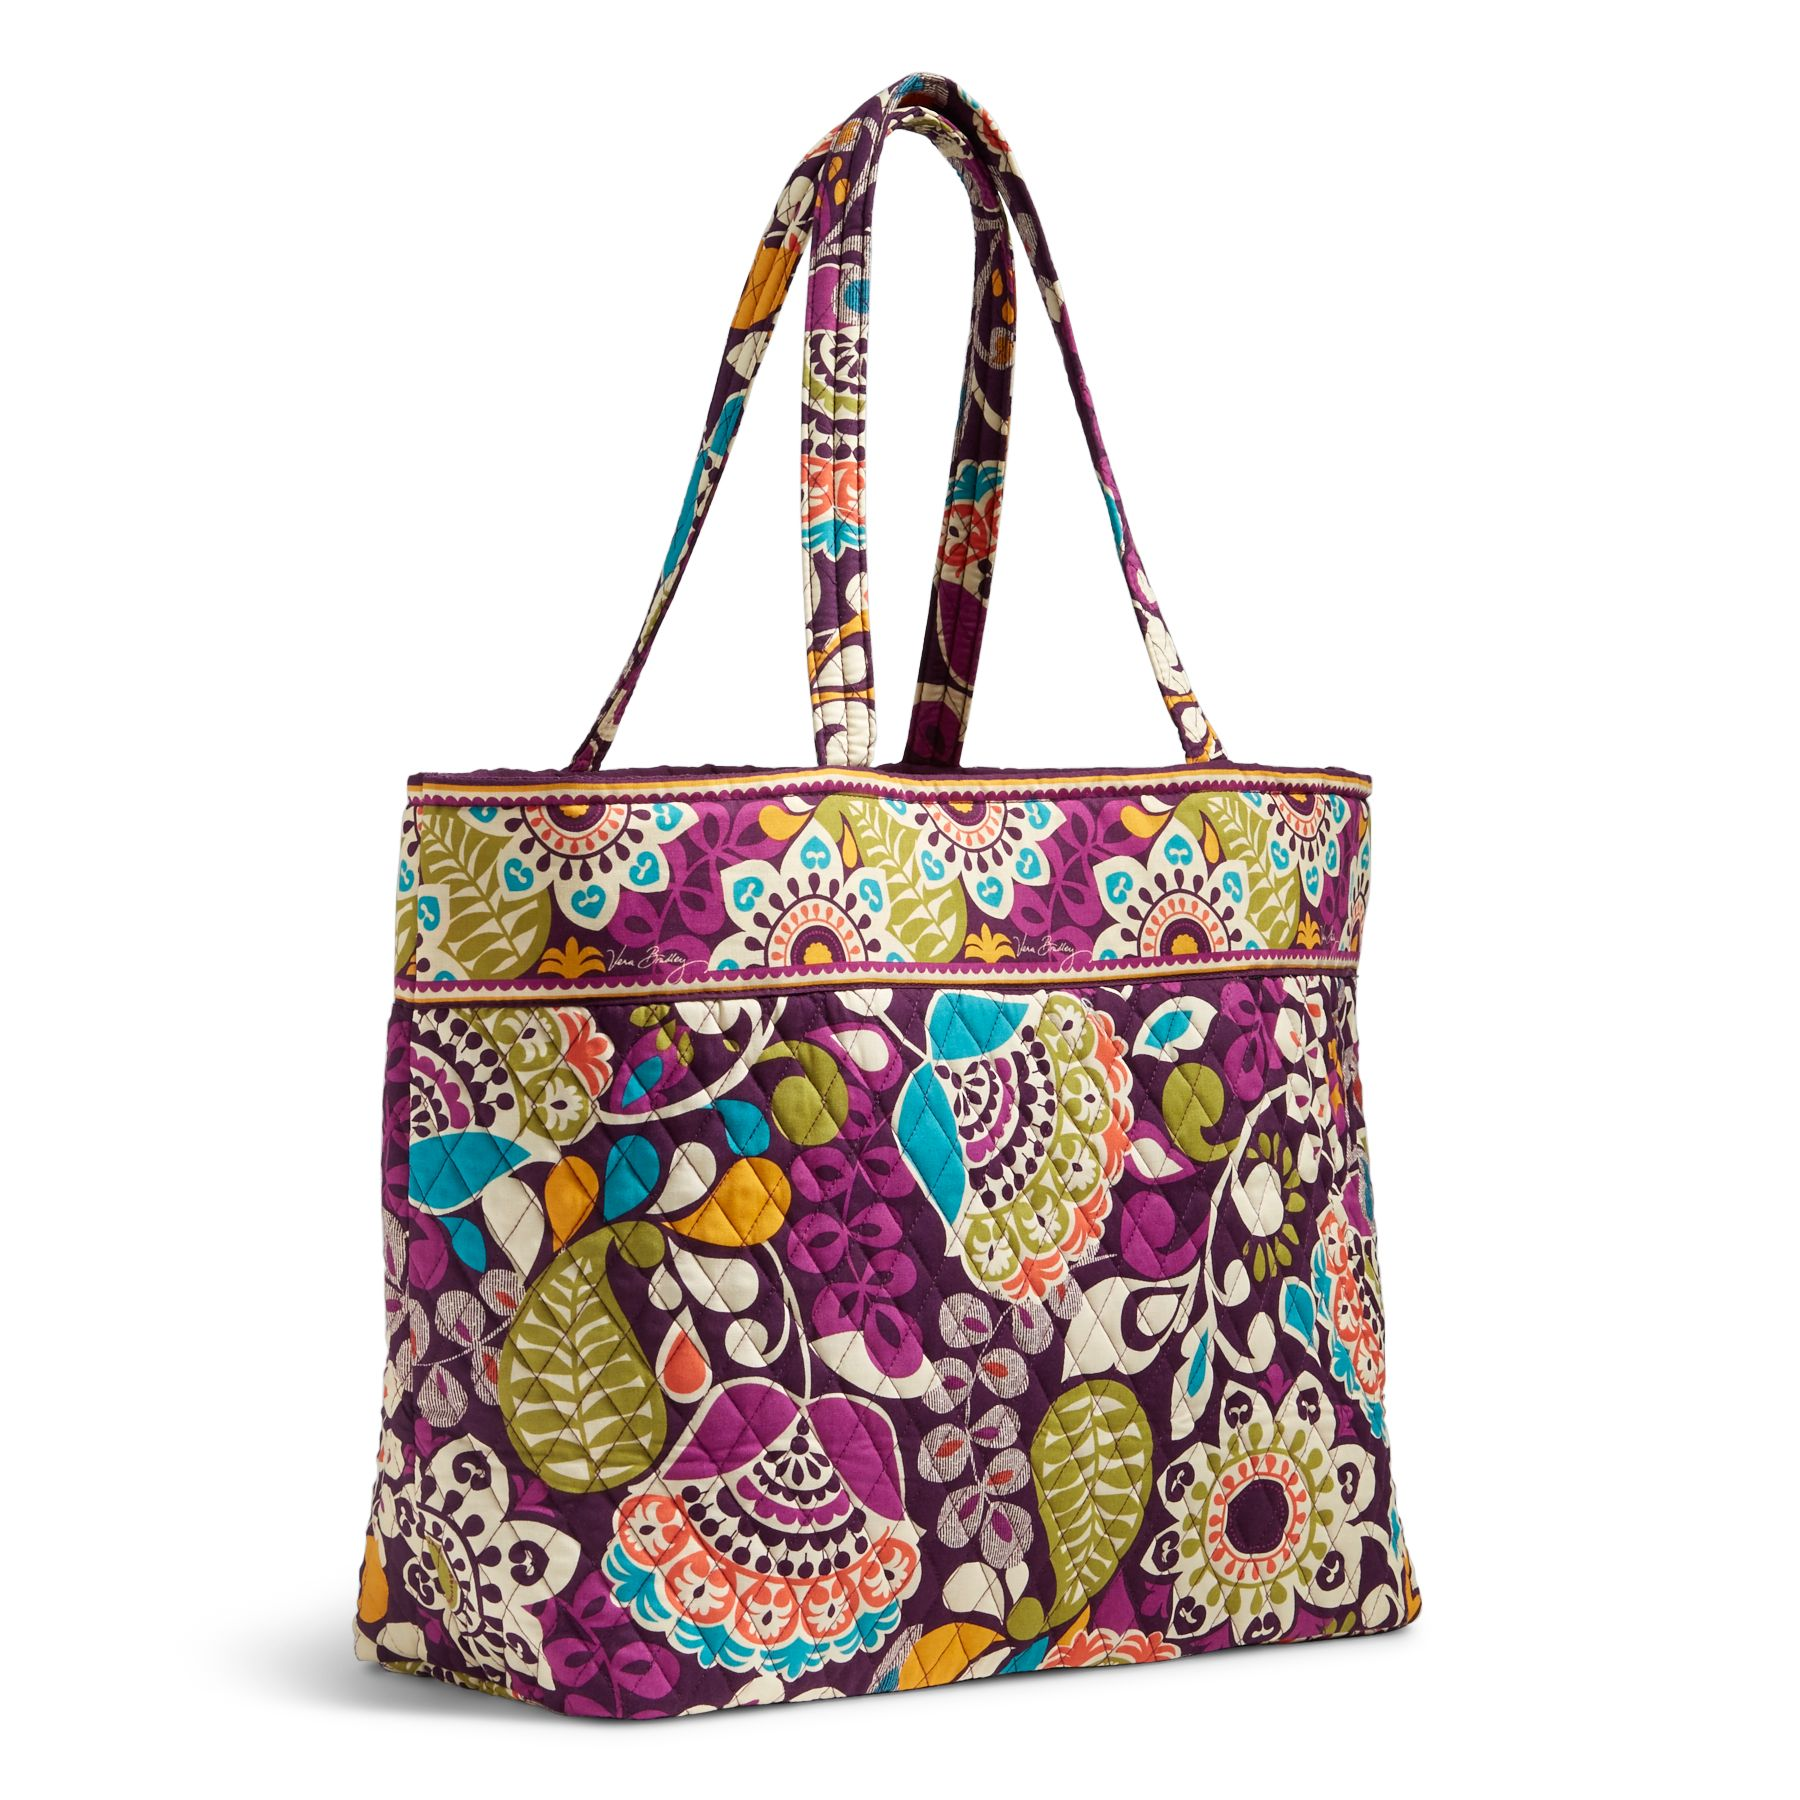 Be unique with your Vera Bradley bags & luggage! QVC is the place to find an array of Vera Bradley patterned backpacks, diaper bags, wristlets & more. Sale Prices Tech Cases & Accessories Tech Gifts Wearable Technology Shop by Brand. Acer Quacker Factory Steel by Design Susan Graver Temp-tations Vera Bradley Men's. Browse Men's.